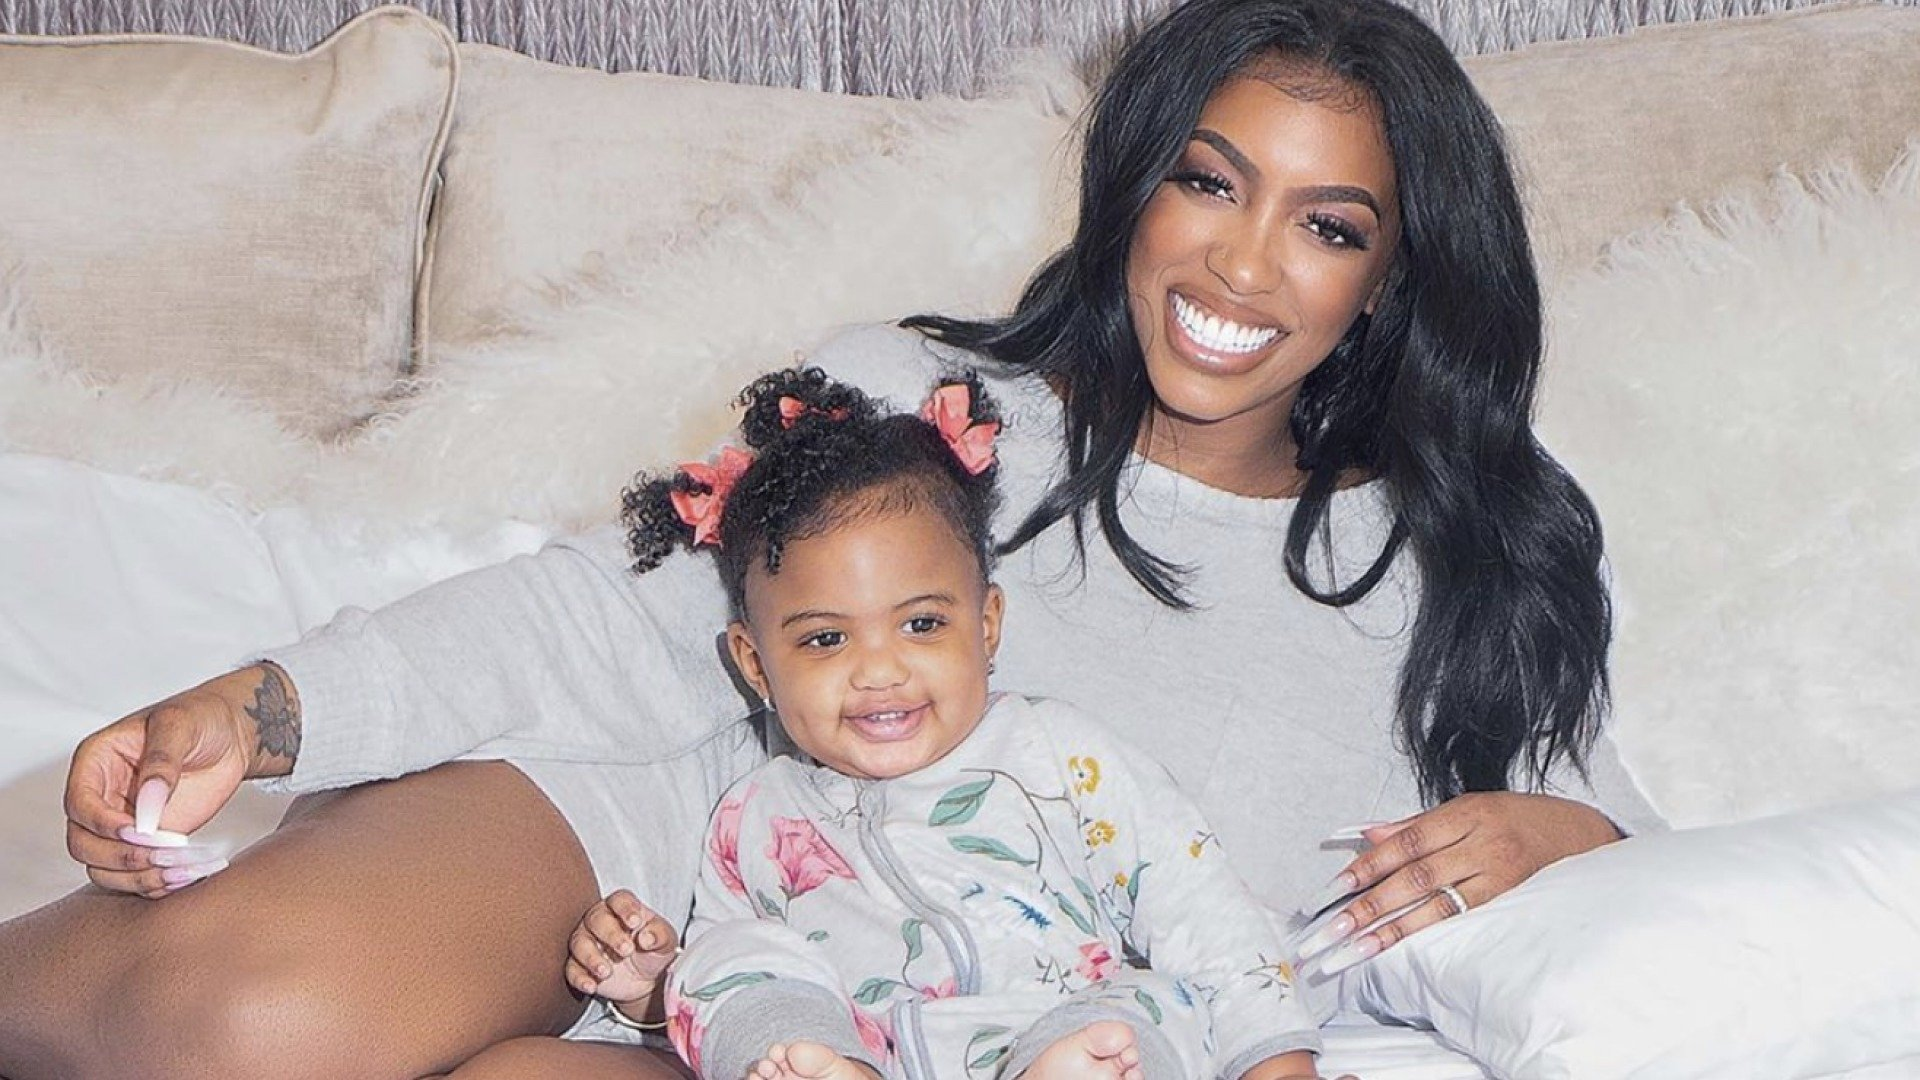 Porsha Williams' Daughter, Pilar Jhena, Looks Like A Princess In This Christmas Photo